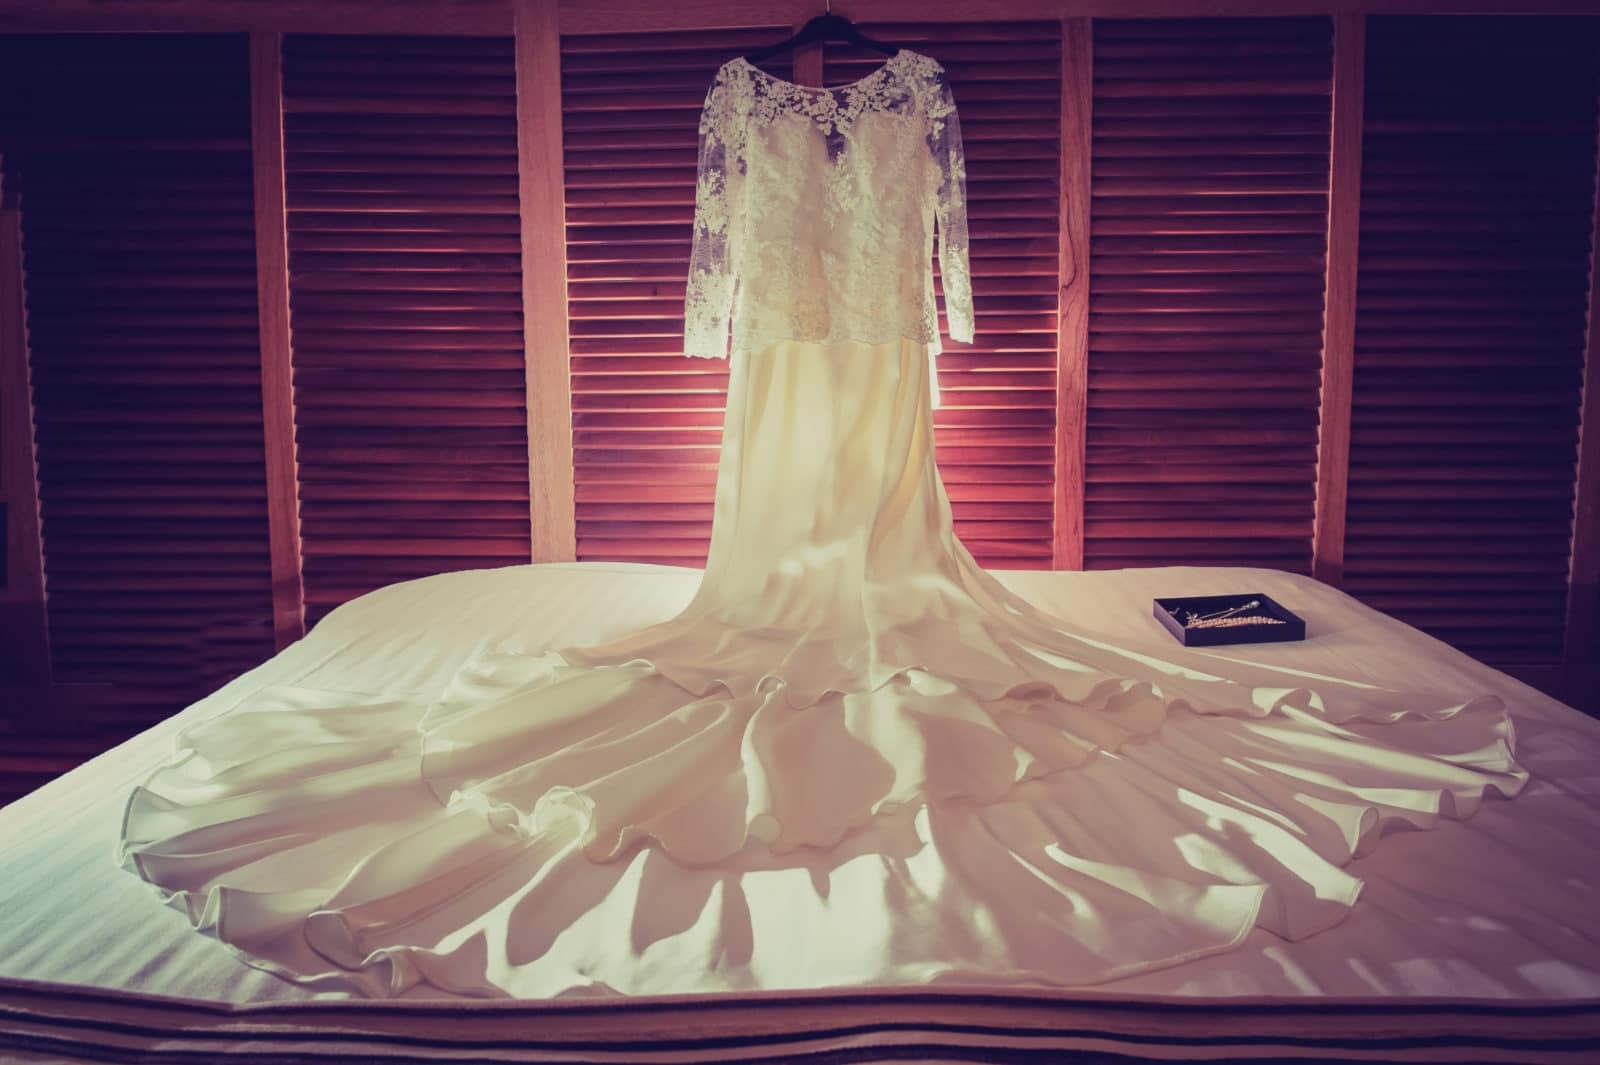 a-wedding-dress-on-a-bed